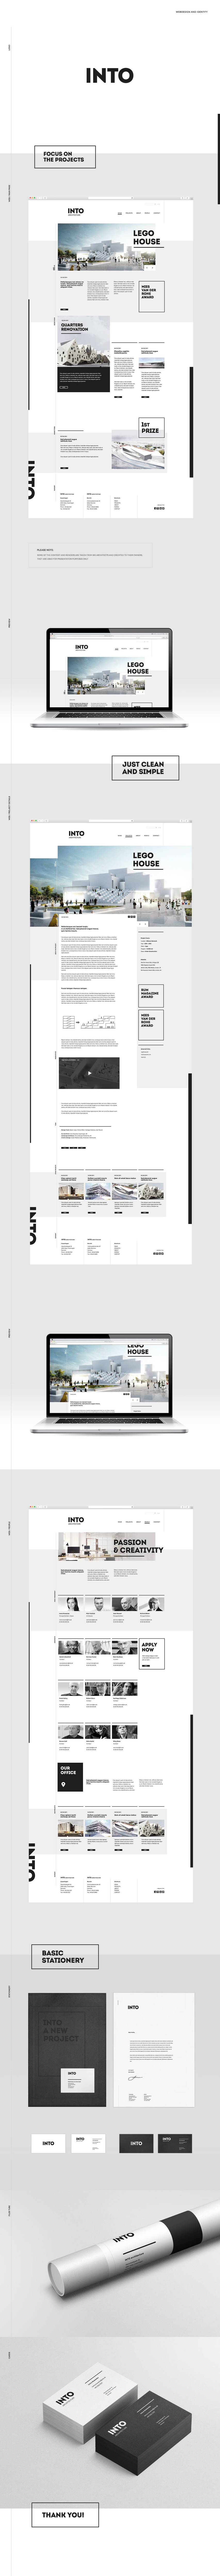 webdesign and branding concept for architecture office.INTO Architecture Irena Nowacka: www.behance.net/irenanowacka